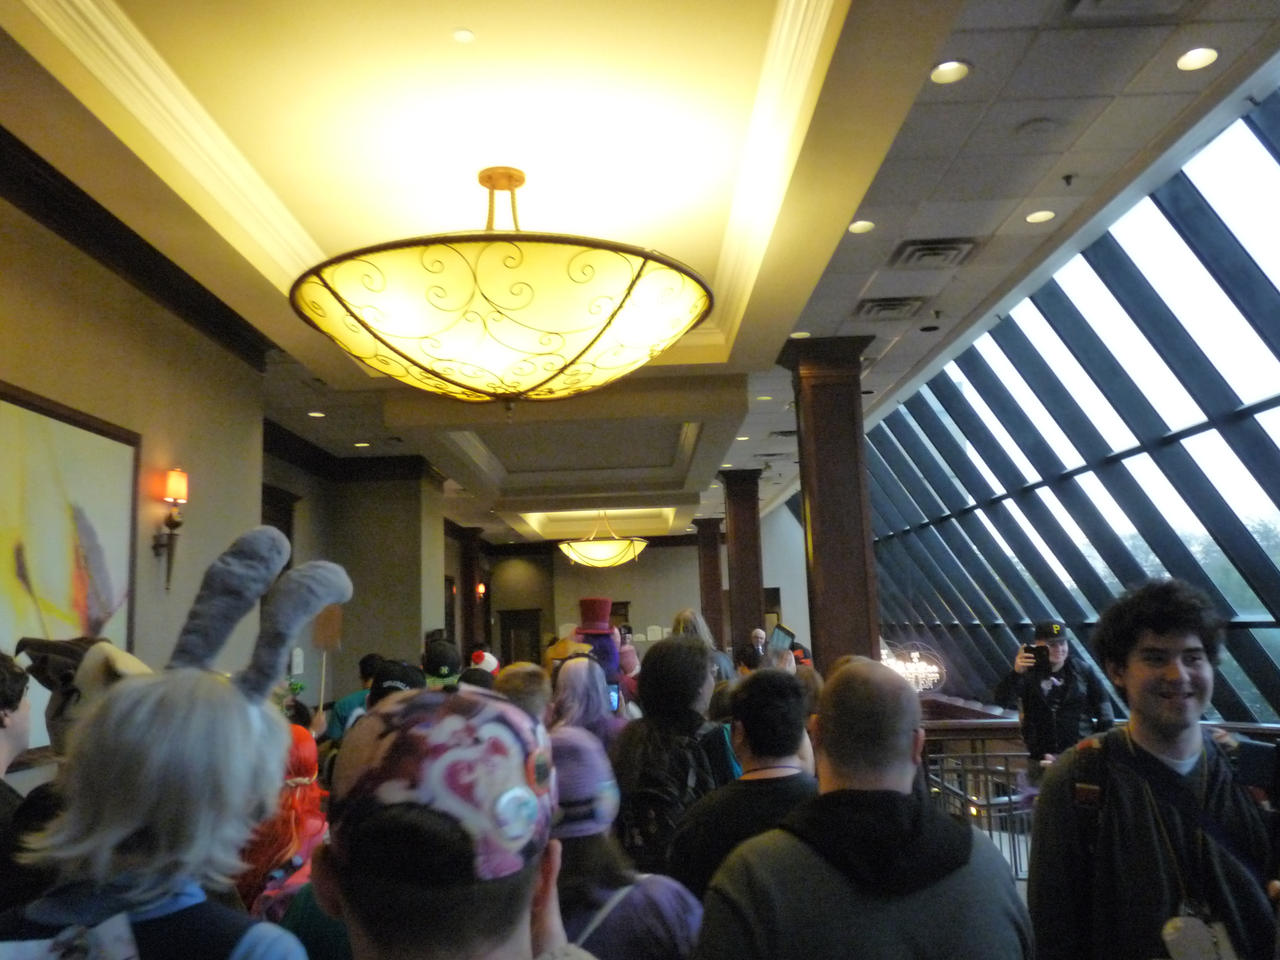 HarmonyCon 2019: March for Equality by lonewolf3878